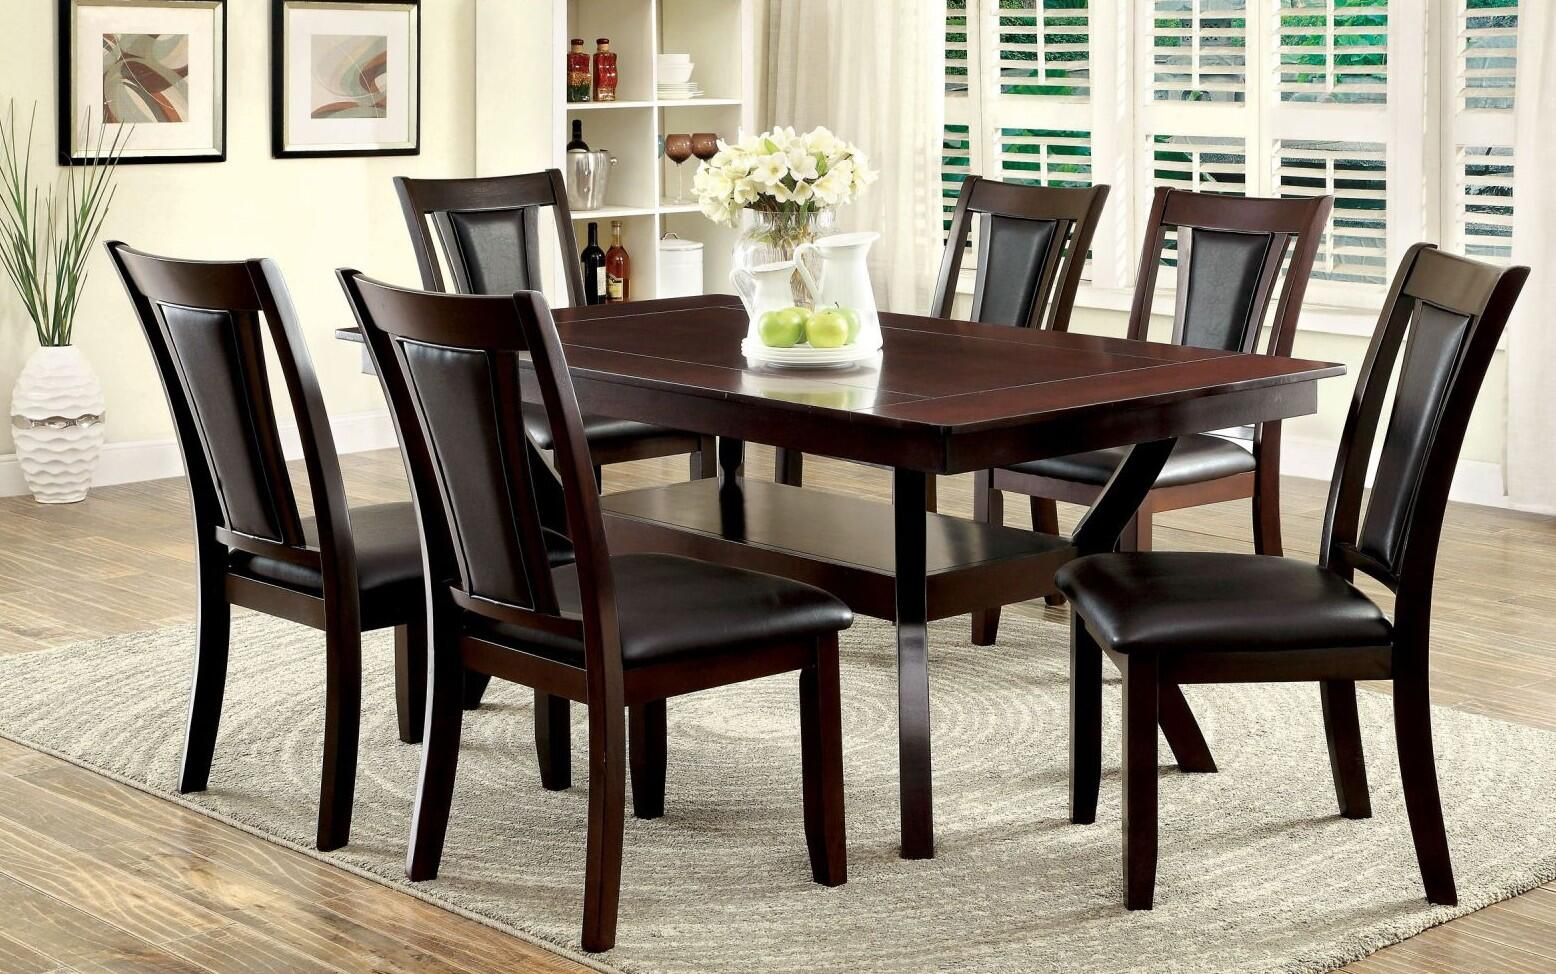 Furniture of America Emmons Dining  Table   Item# 7882